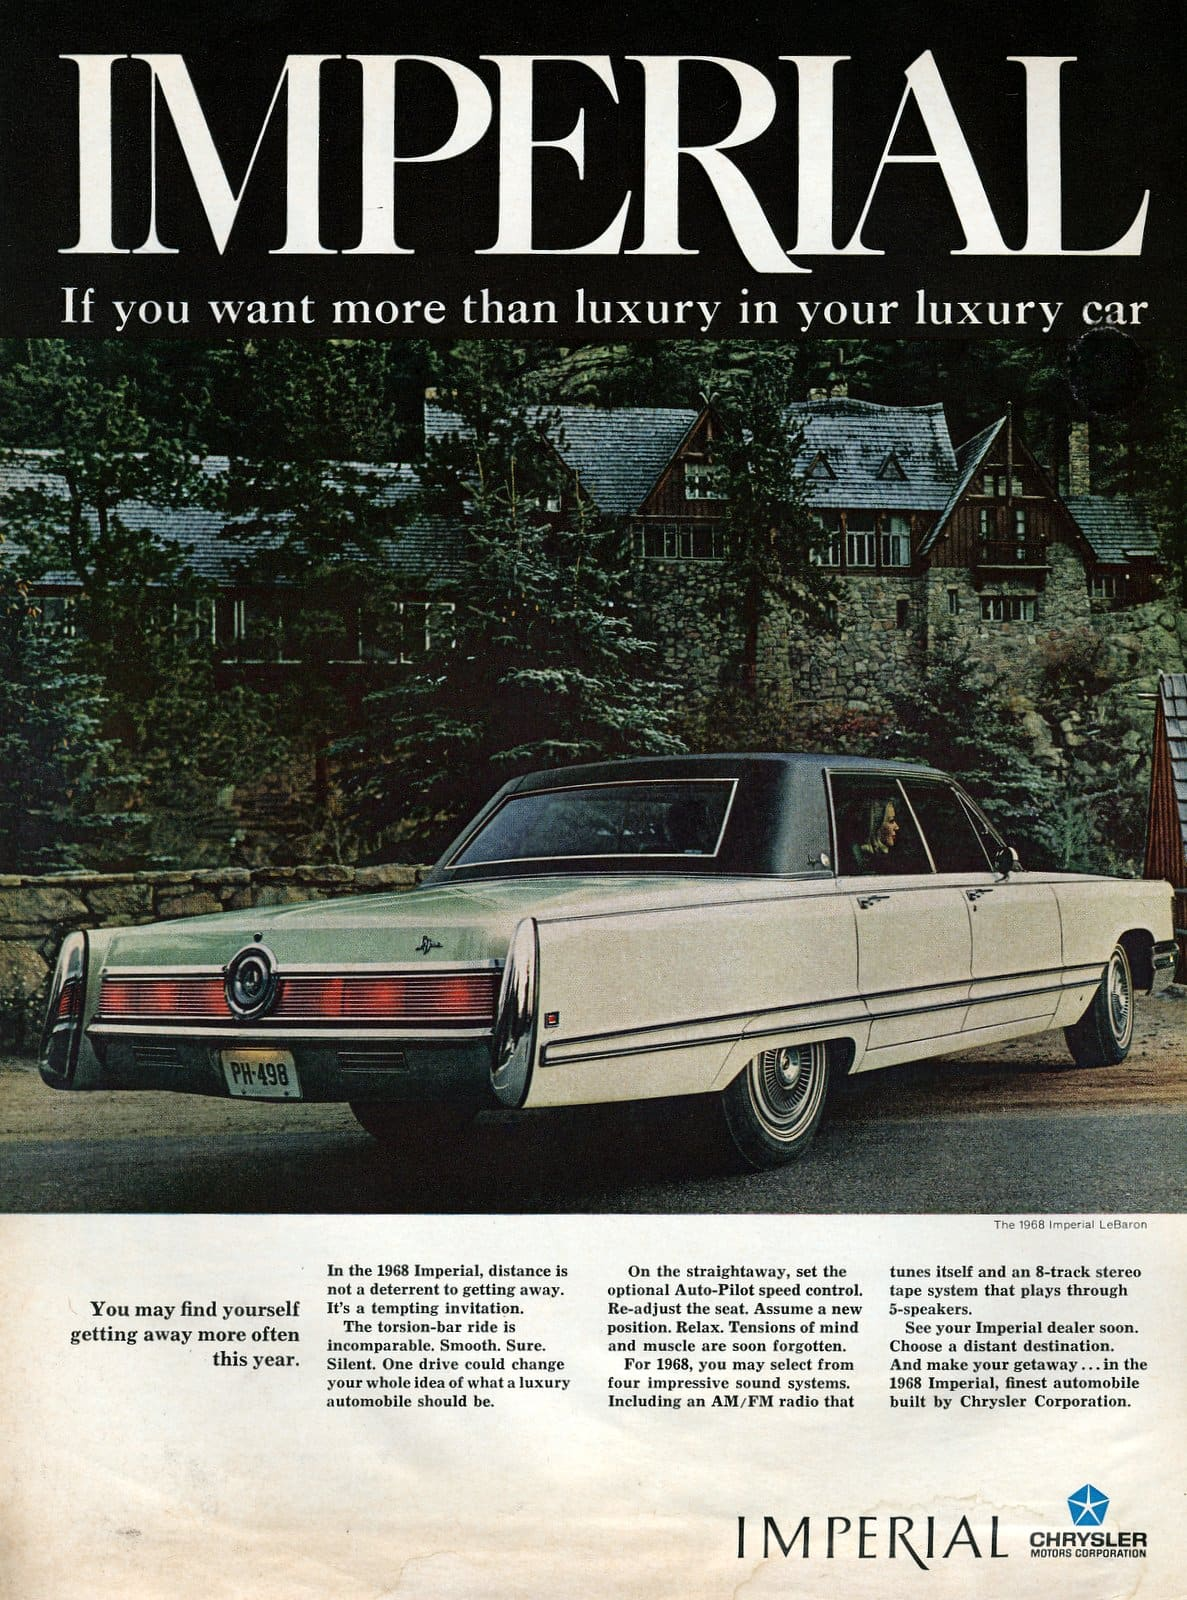 1968 Chrysler Imperial - vintage classic car ad (4)